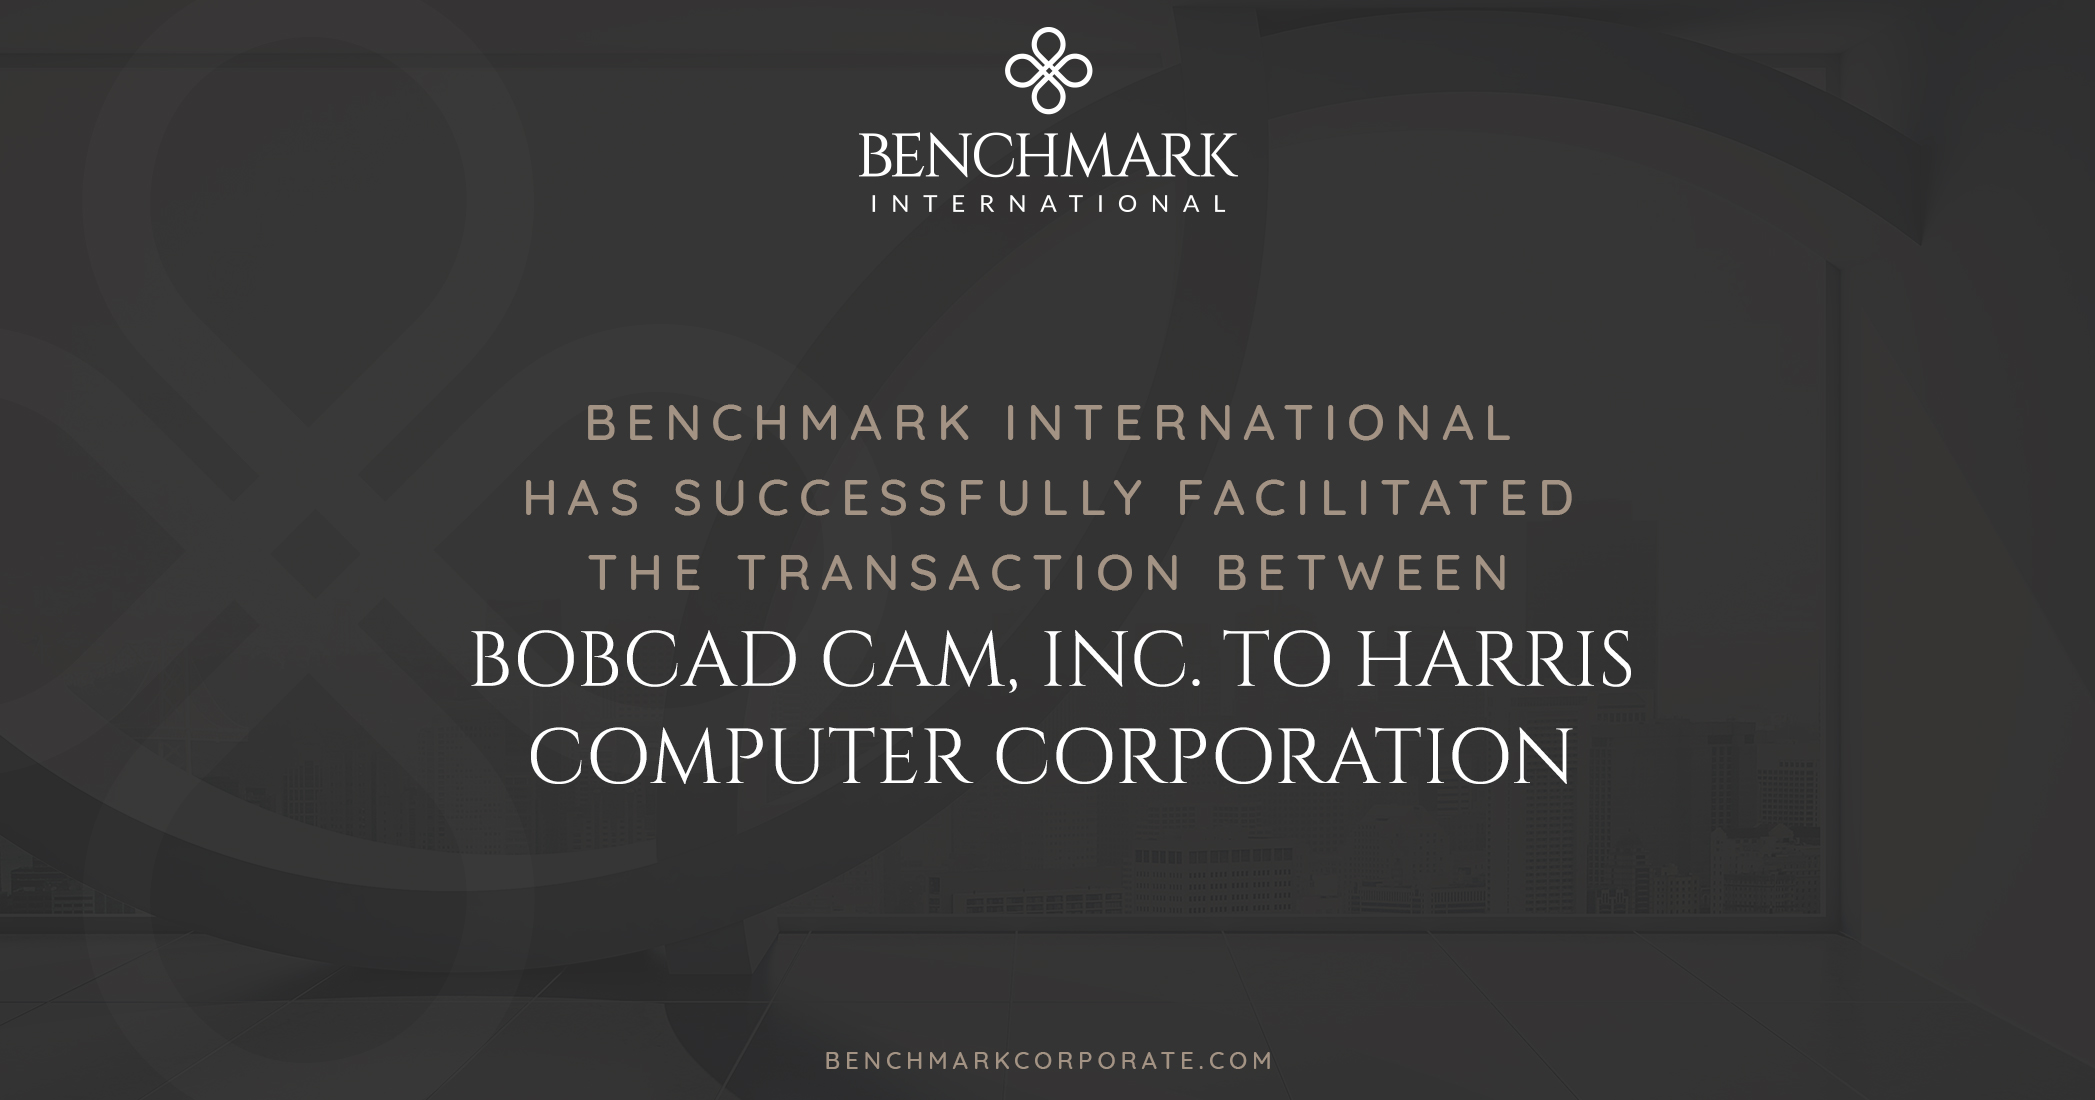 Benchmark International Facilitated the Transaction of BobCAD CAM, Inc. to Harris Computer Corporation